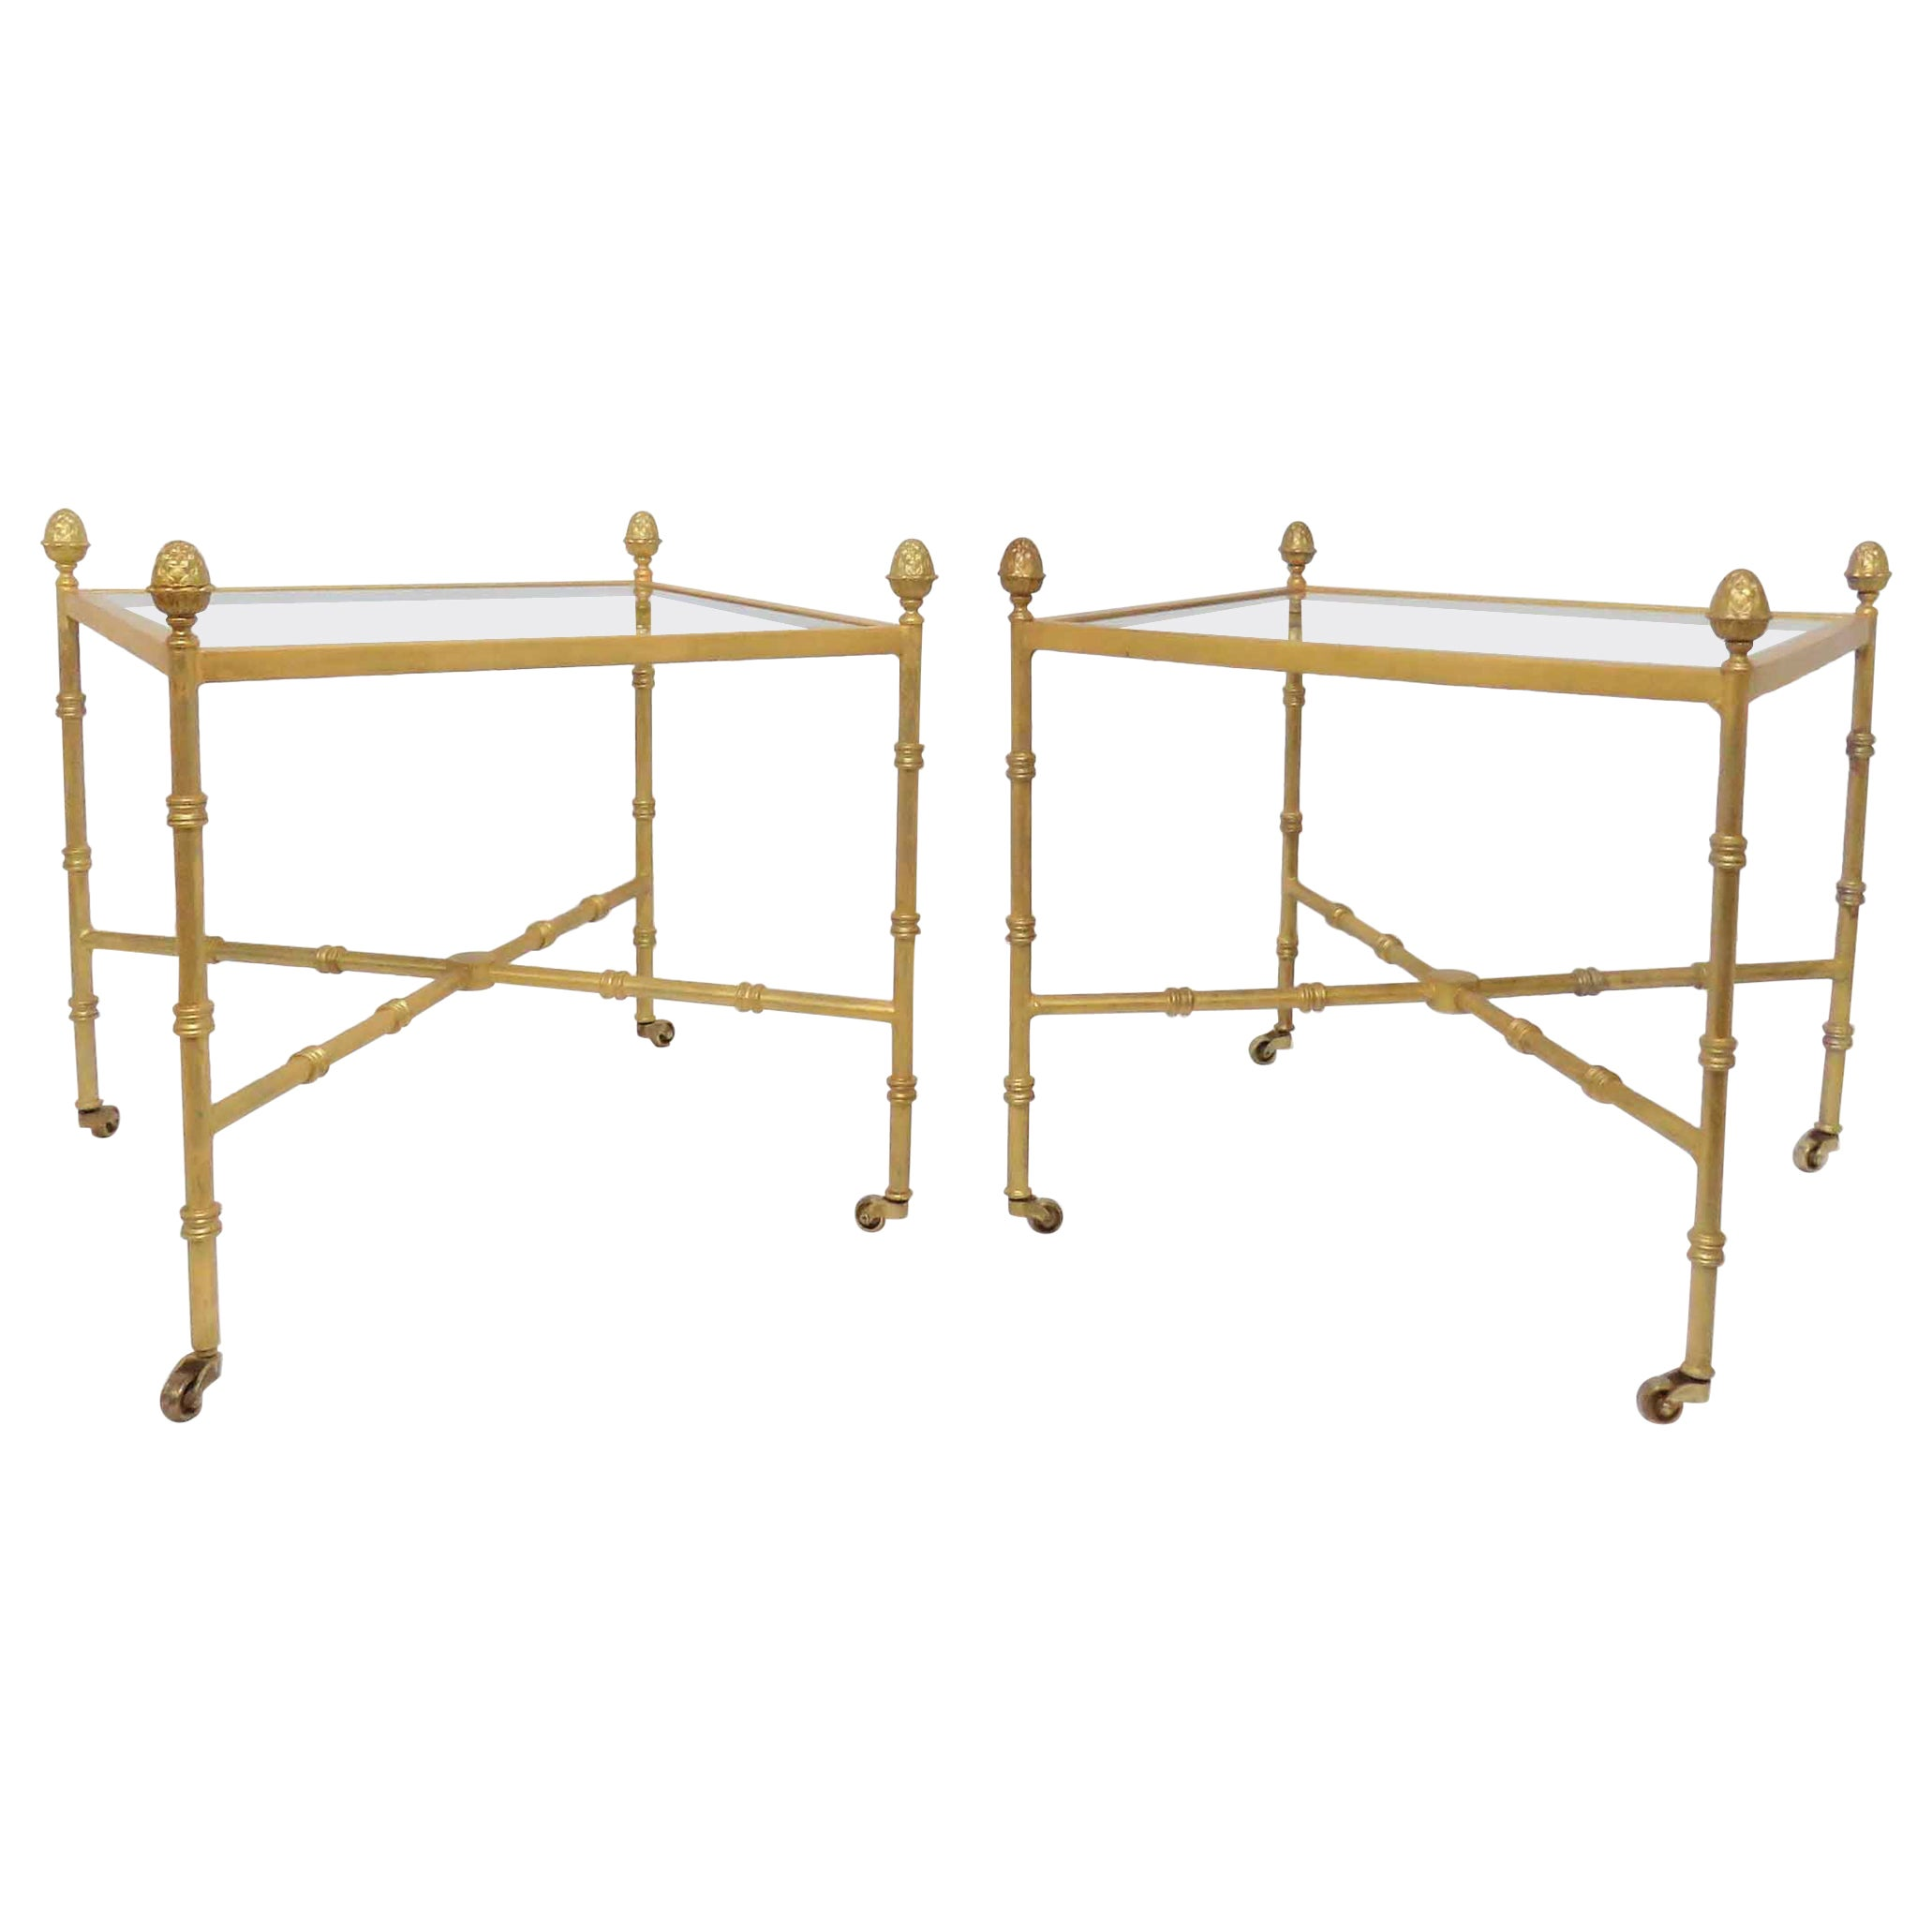 Pair of Maison Baguès Style Gilt End Tables with X-Stretchers and Acorn Finials